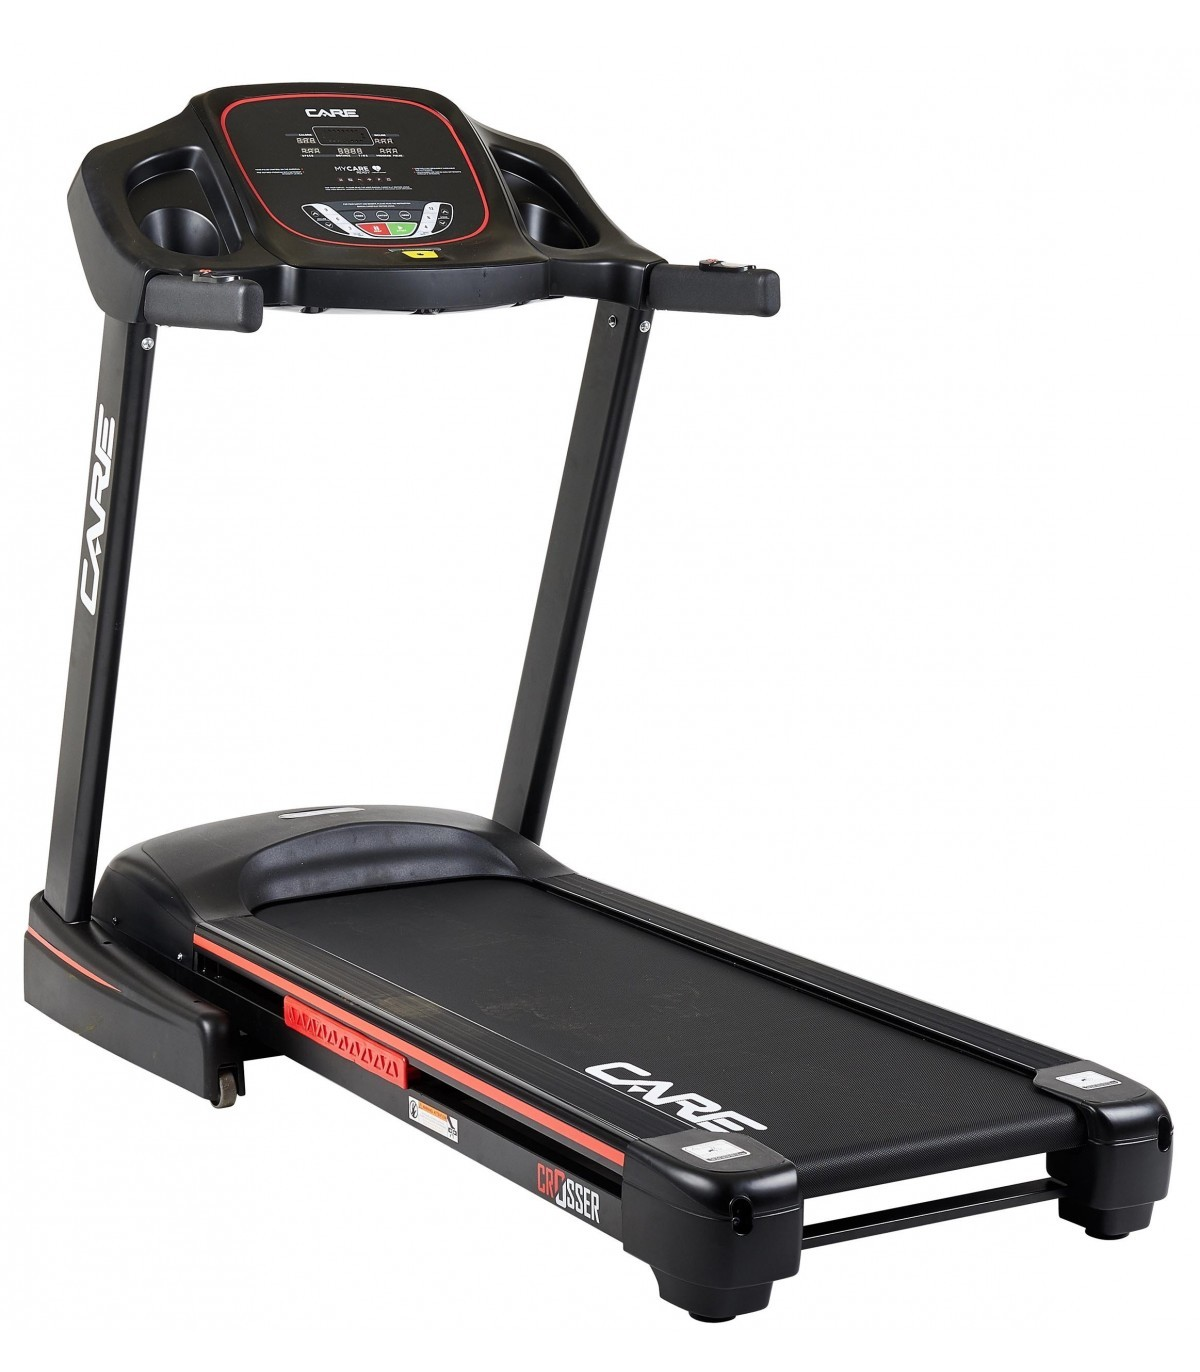 Tapis de course CONNECTABLE CROSSER - Care Fitness